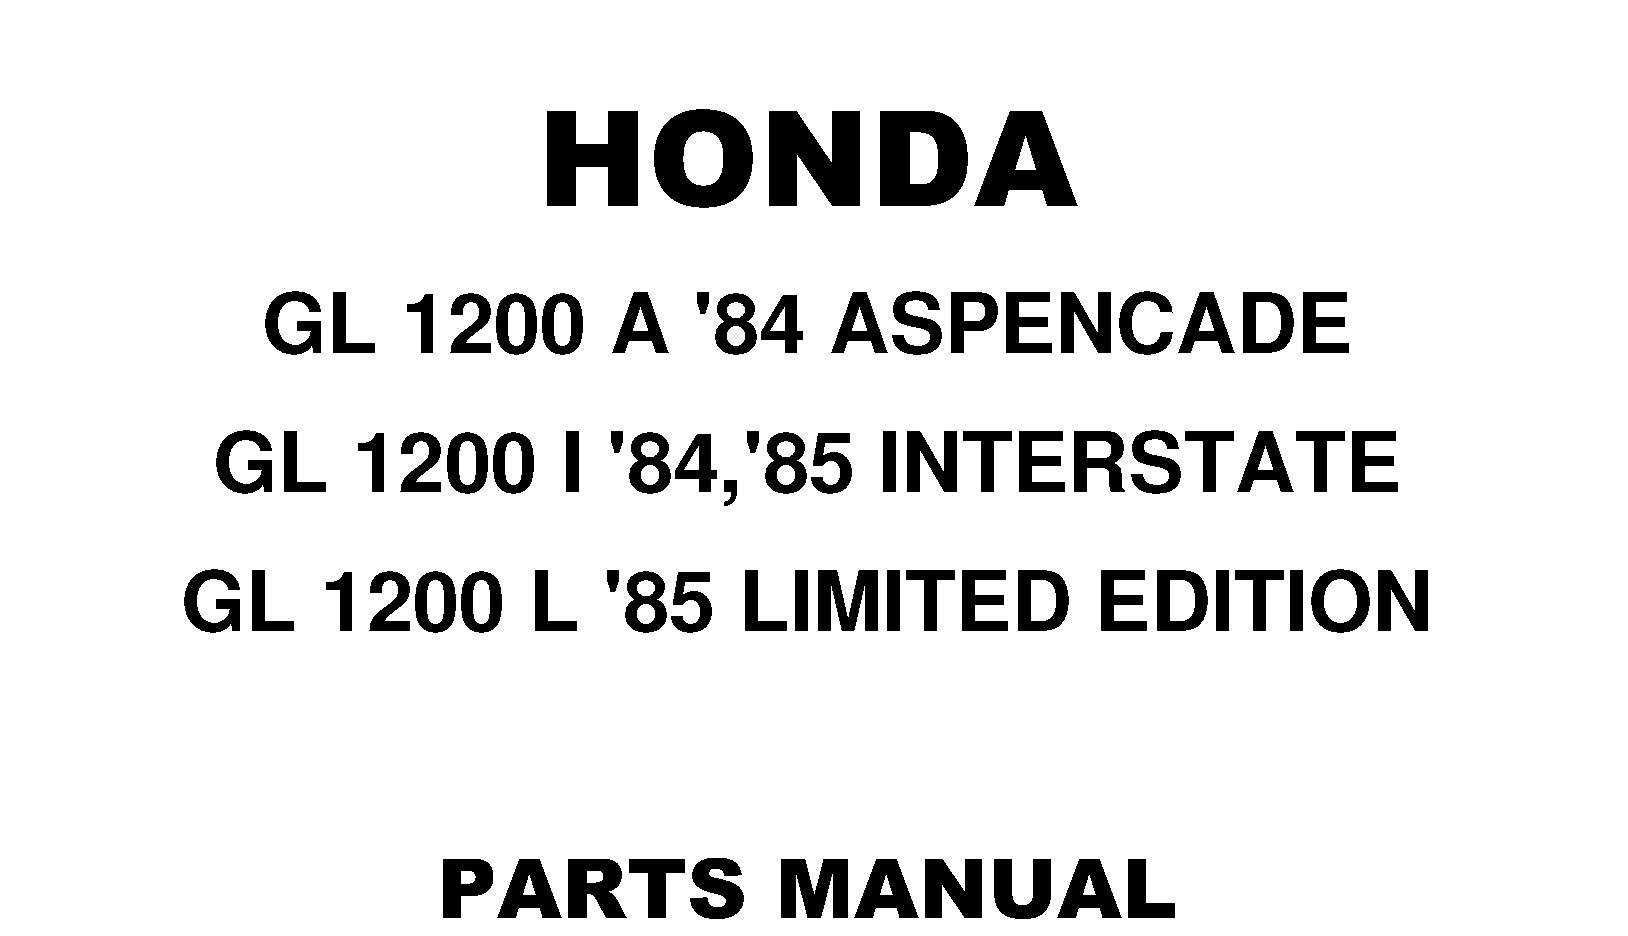 Parts list for Honda GL1200 (1984-1985)